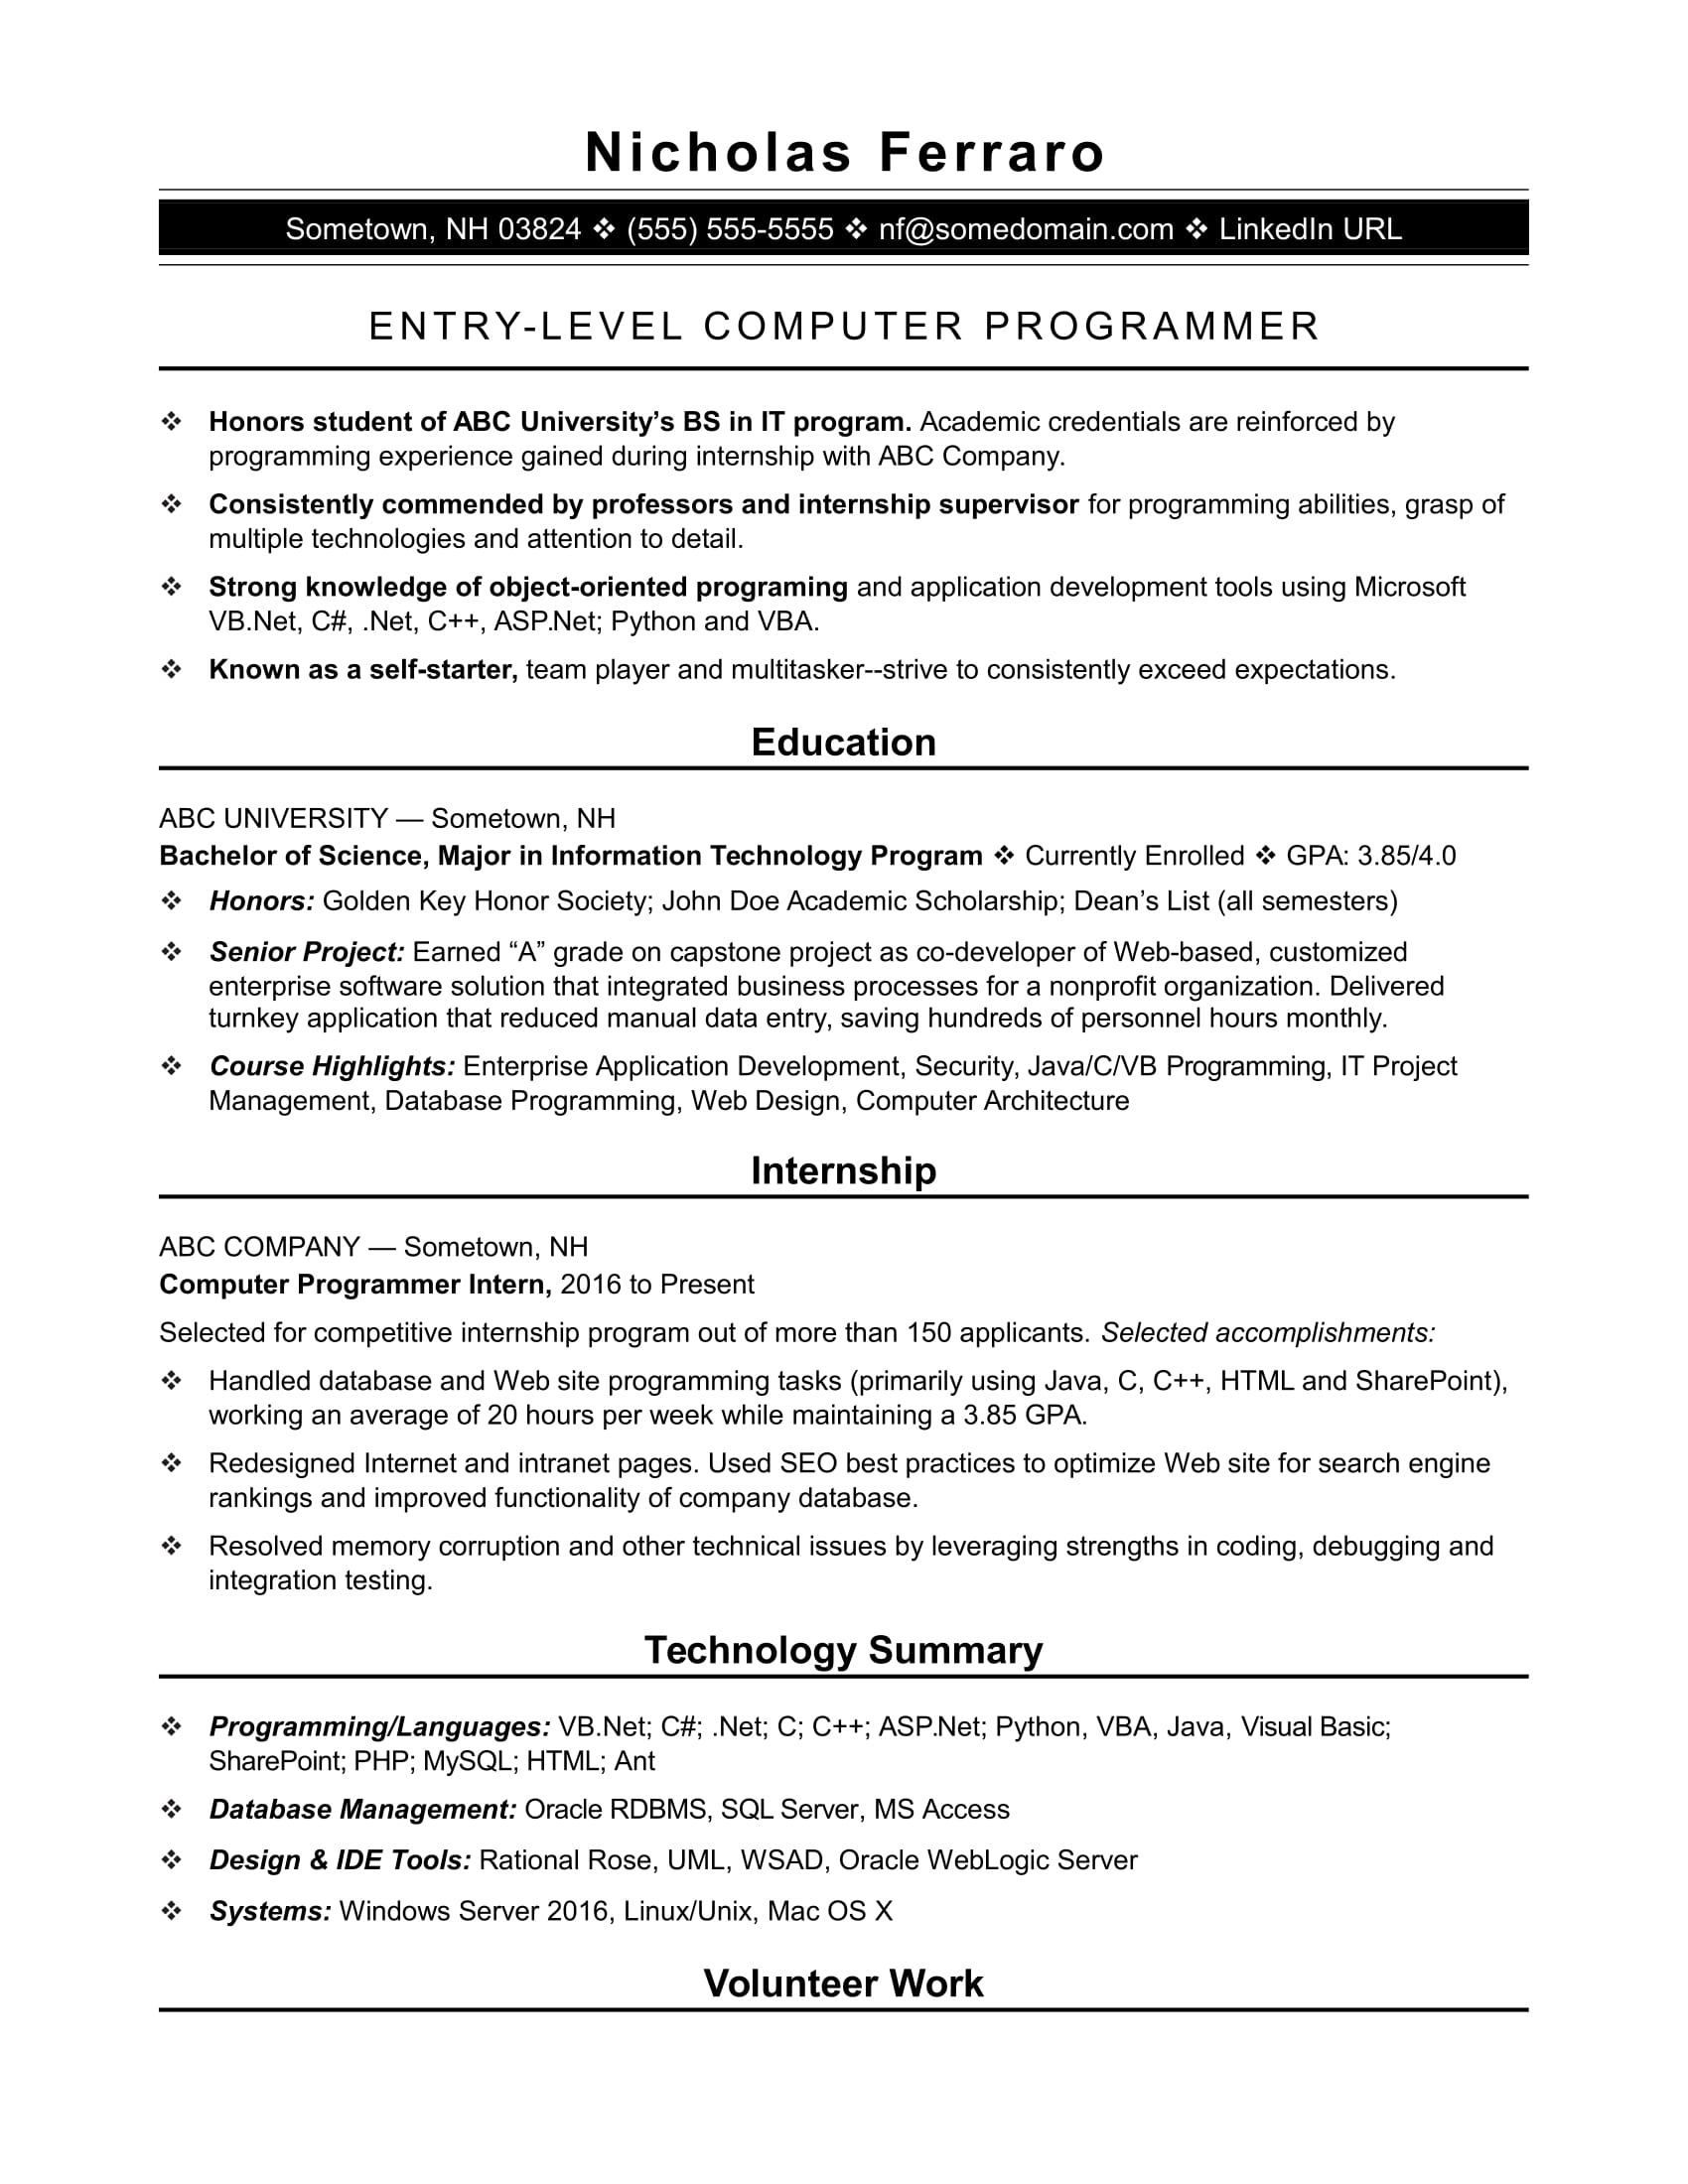 Sample Resume For An Entry Level Computer Programmer  Resume For